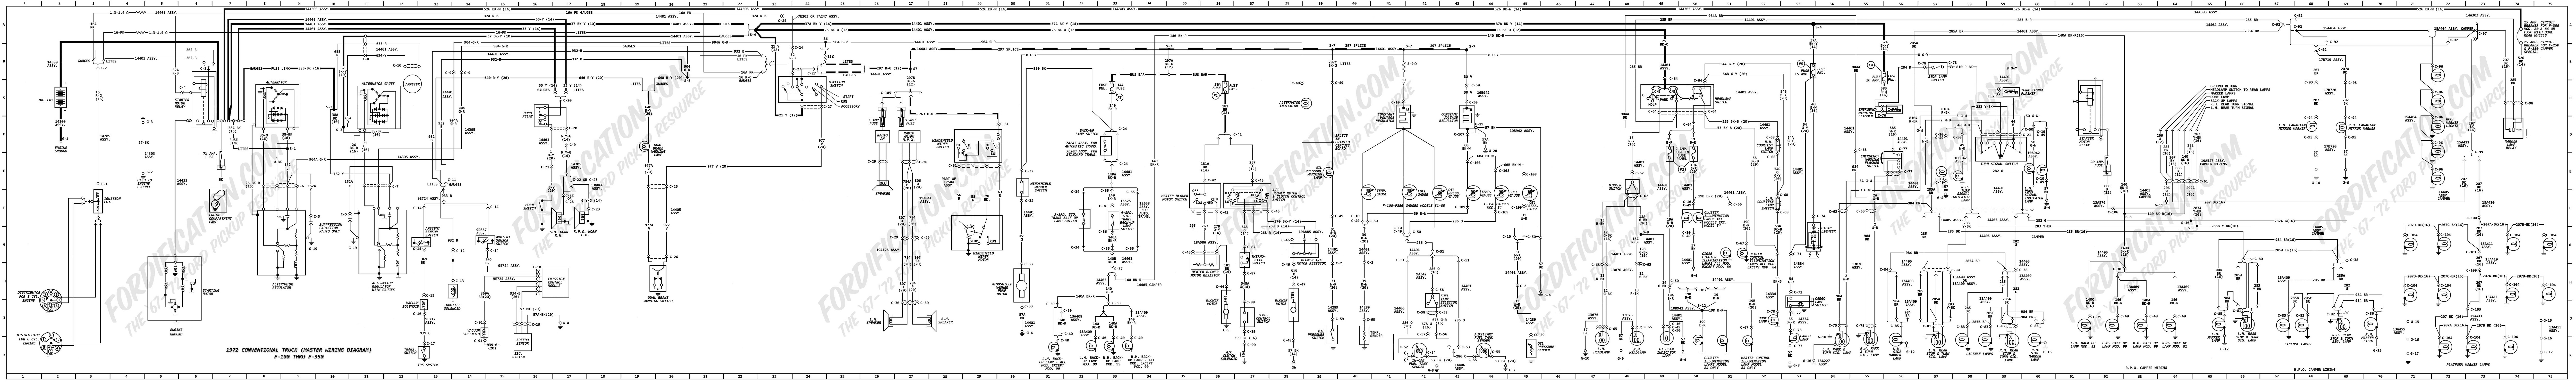 Diagram Jeep Fuel Gauge Wiring Diagram For 1972 Full Version Hd Quality For 1972 Soft Wiring Media90 It